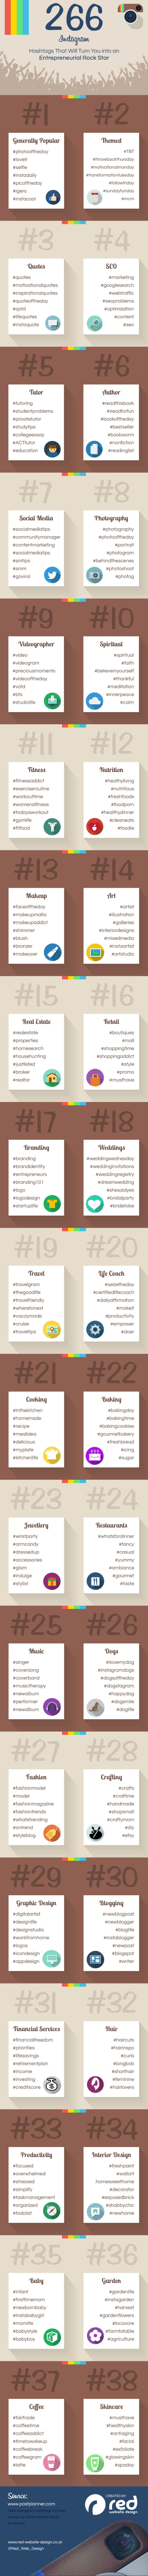 The most popular hashtags known to get your #Socialmedia #instagram